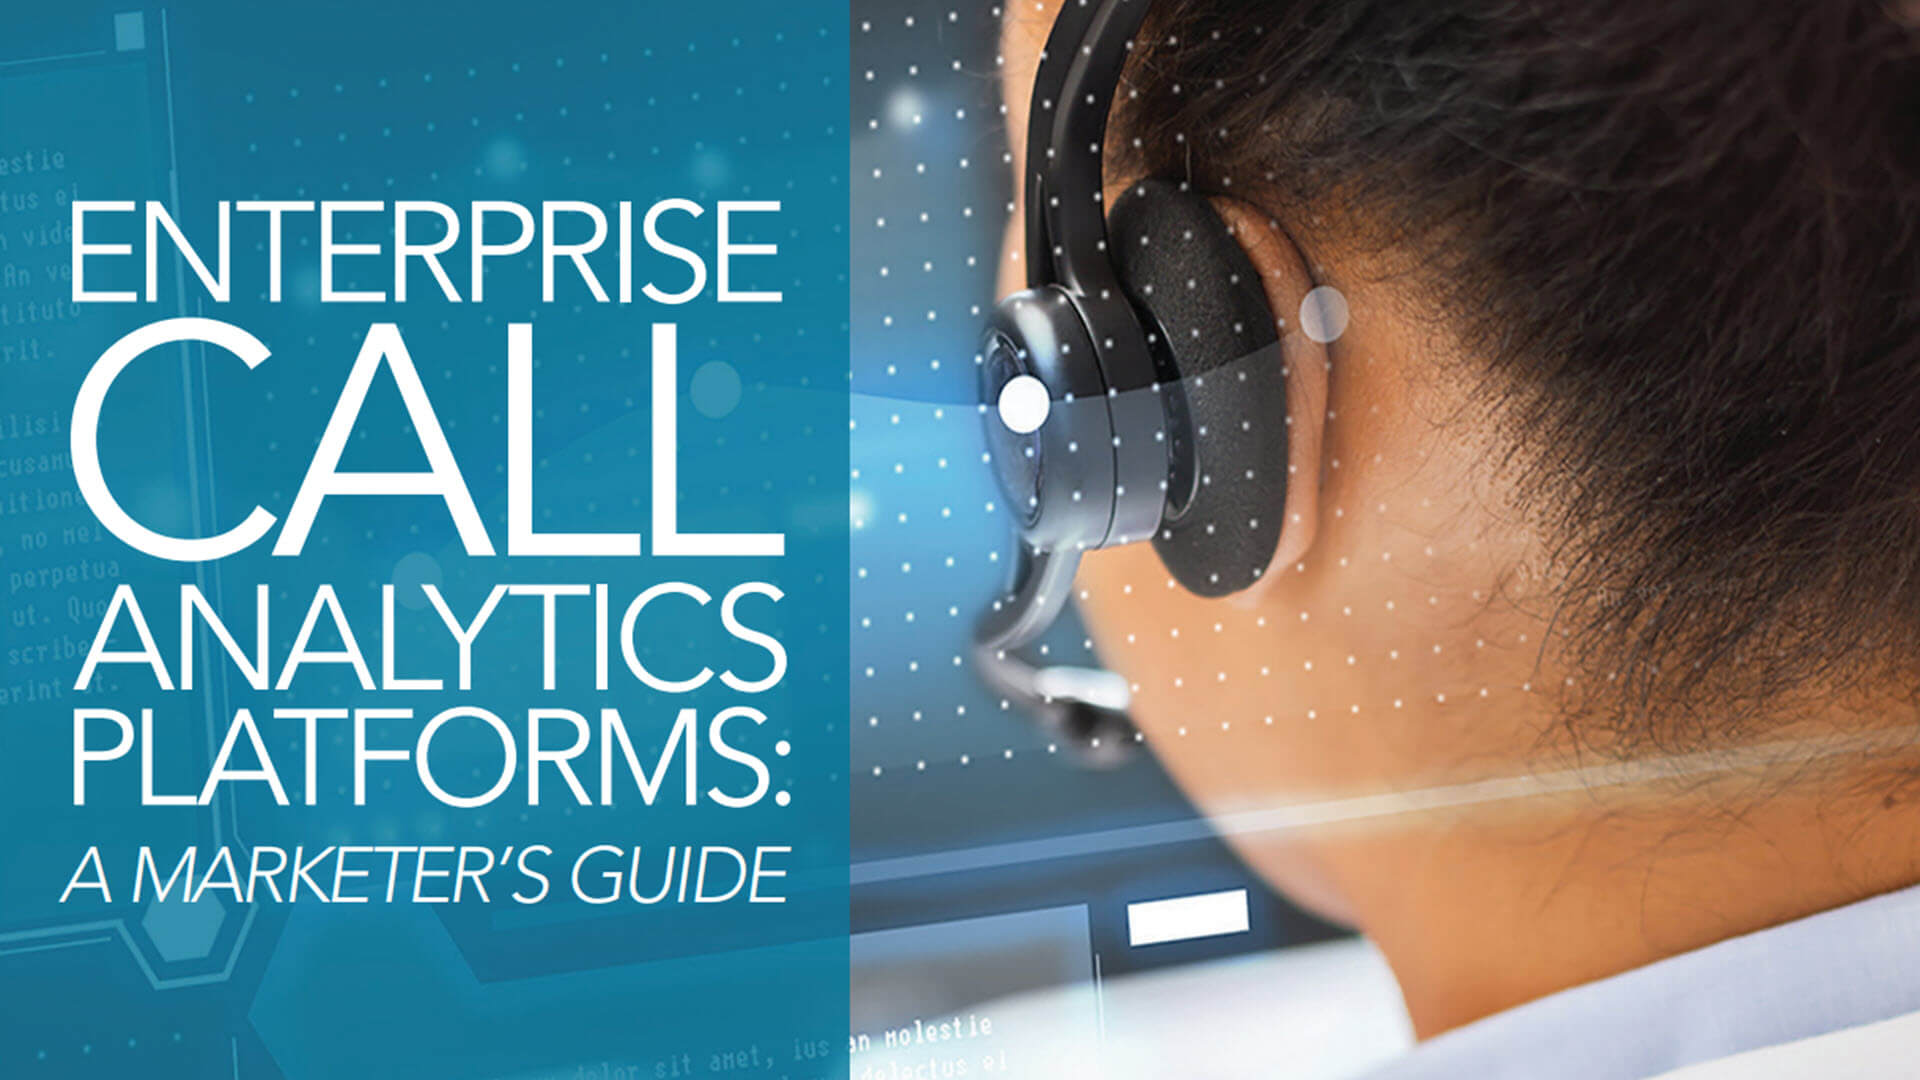 Enterprise Call Analytics Platforms: A Marketer's Guide - updated for 2019!